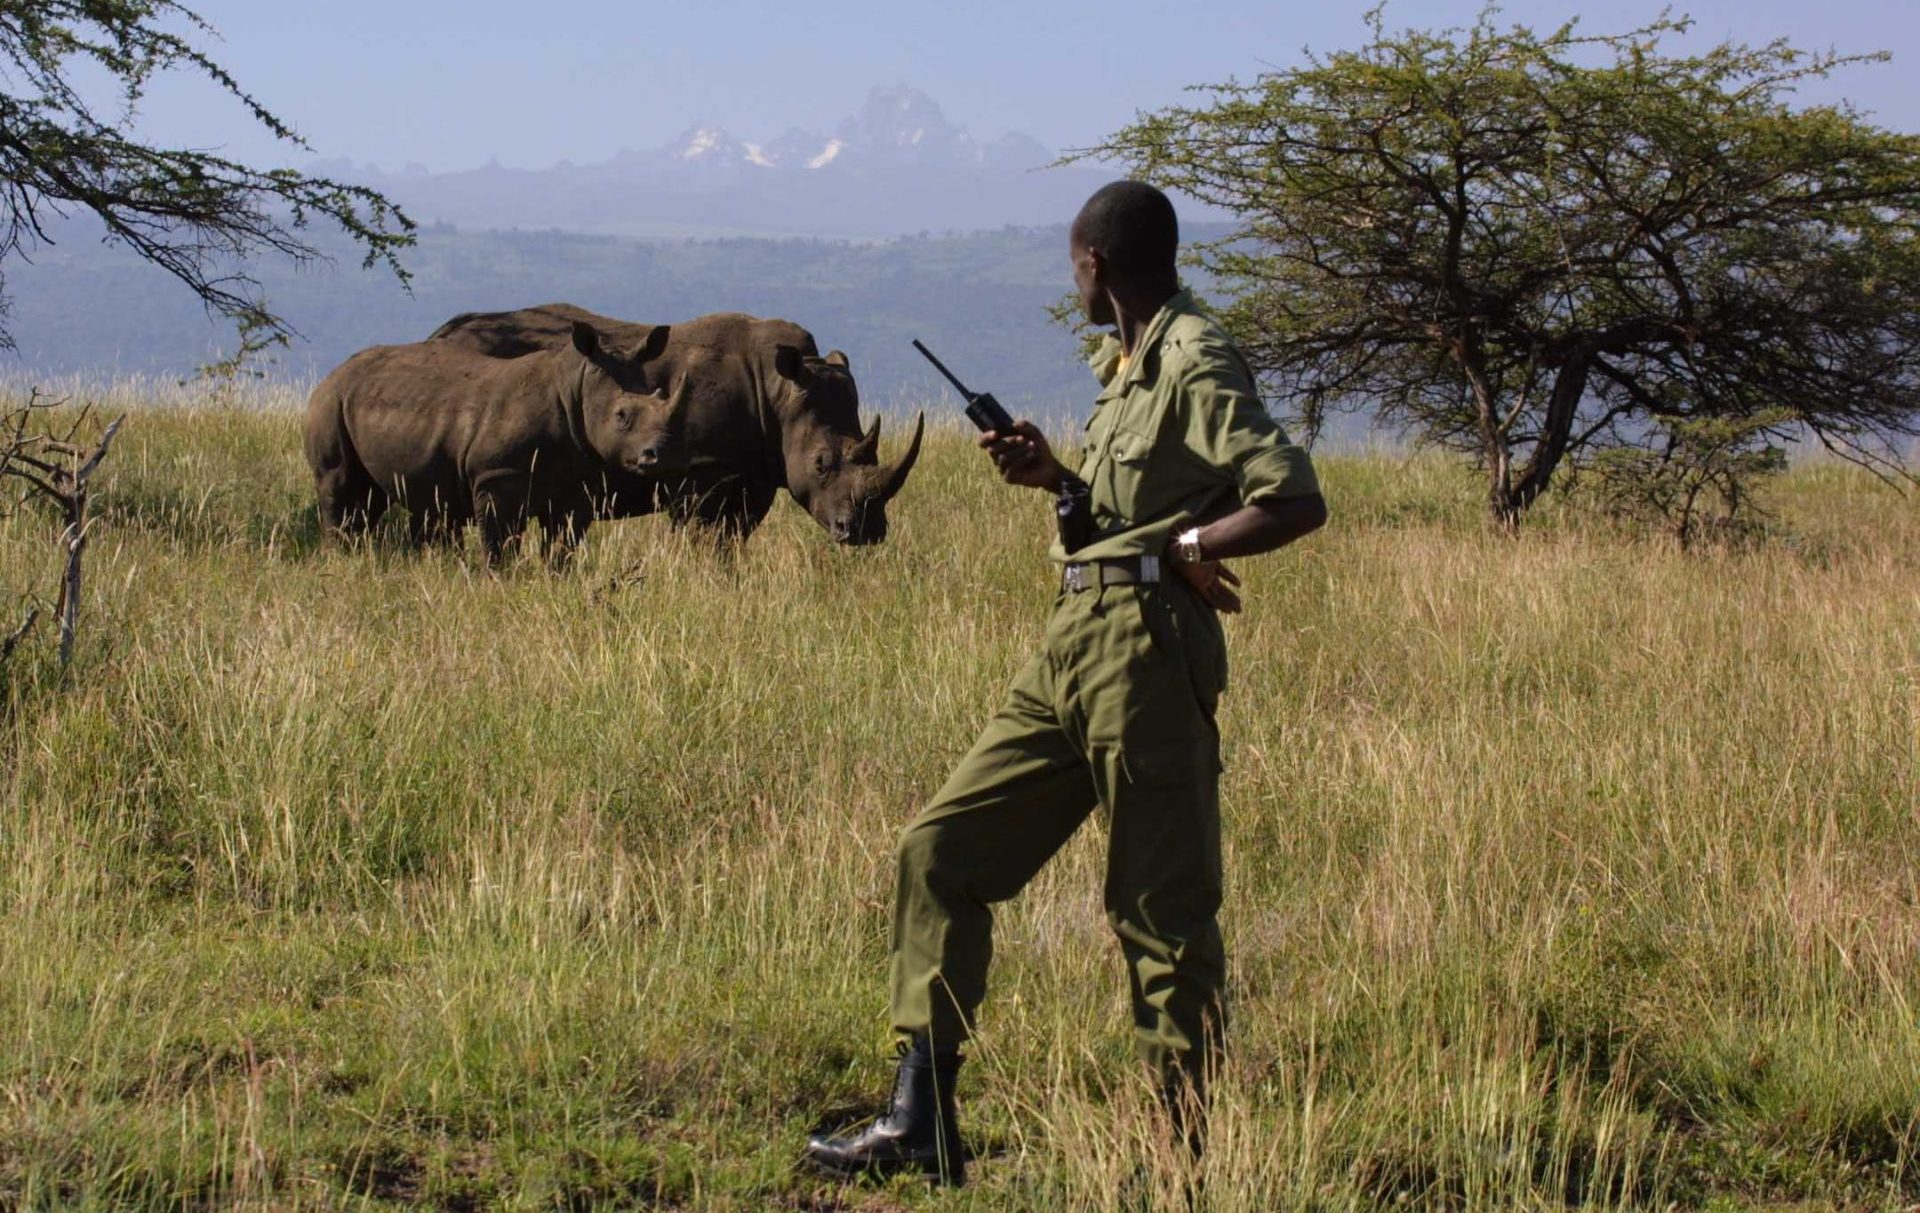 Poaching & The Illegal Wildlife Trade